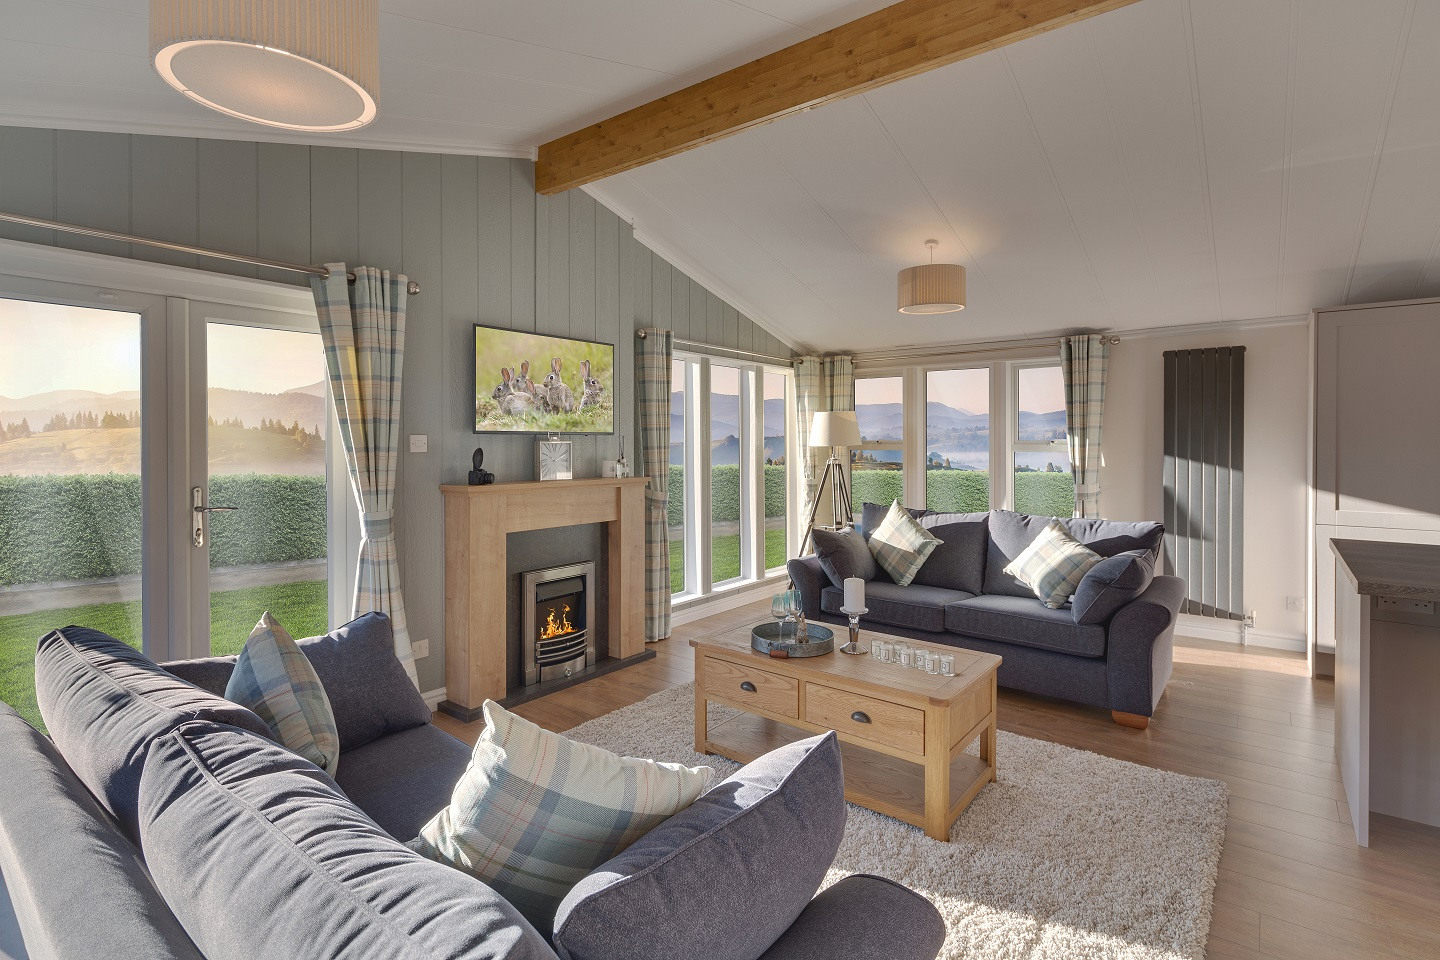 Willerby Juniper: New Holiday Lodges for Sale, Available to Order Large Image 2